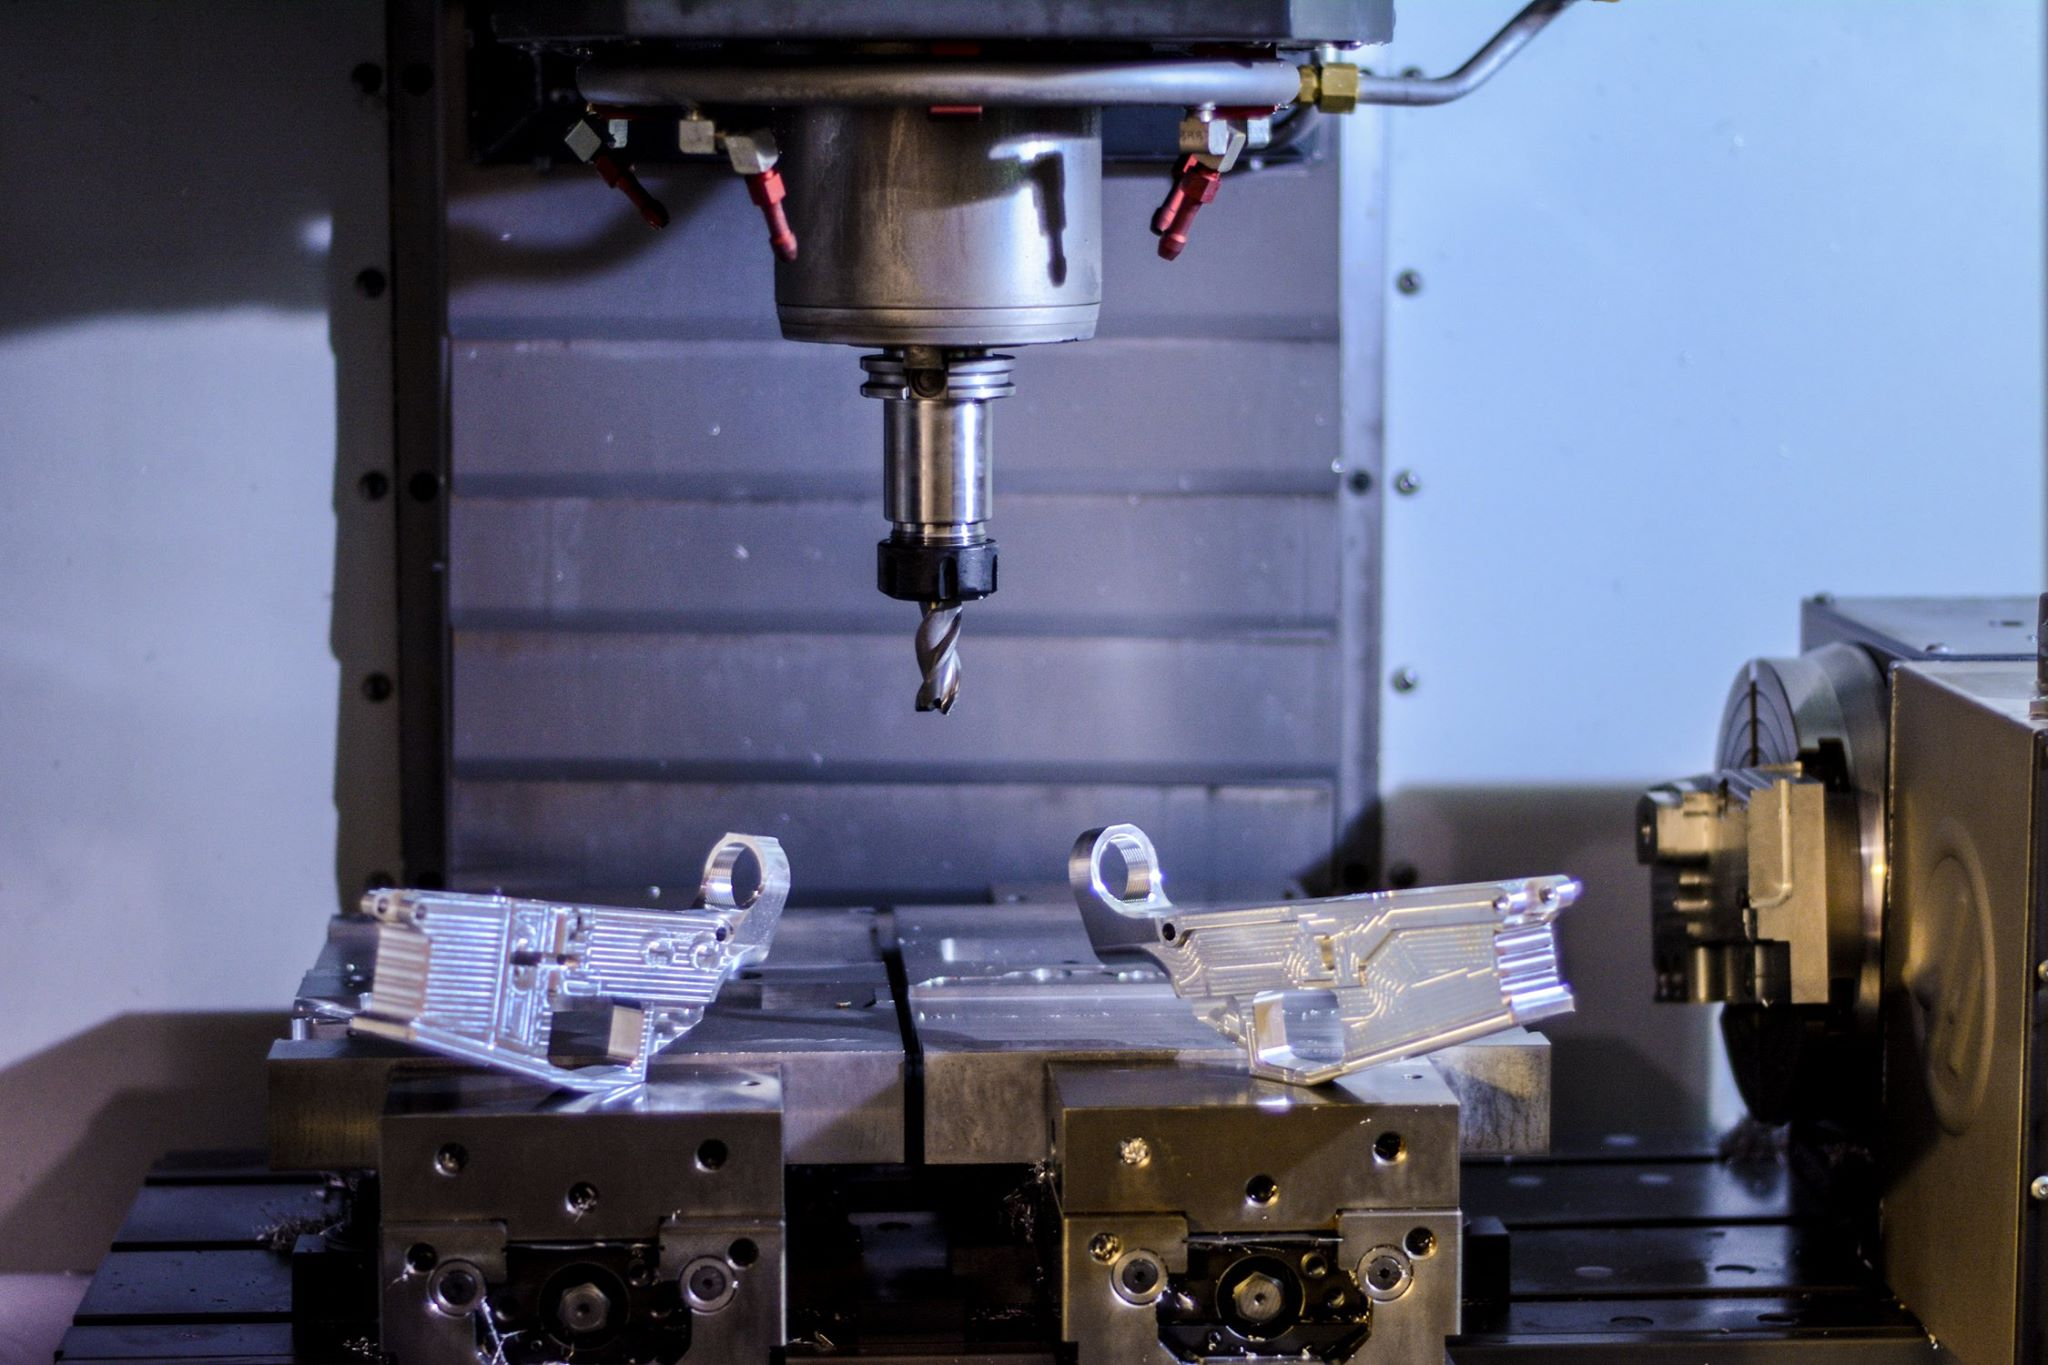 M1 Machining 80% lowers in Haas CNC Machine